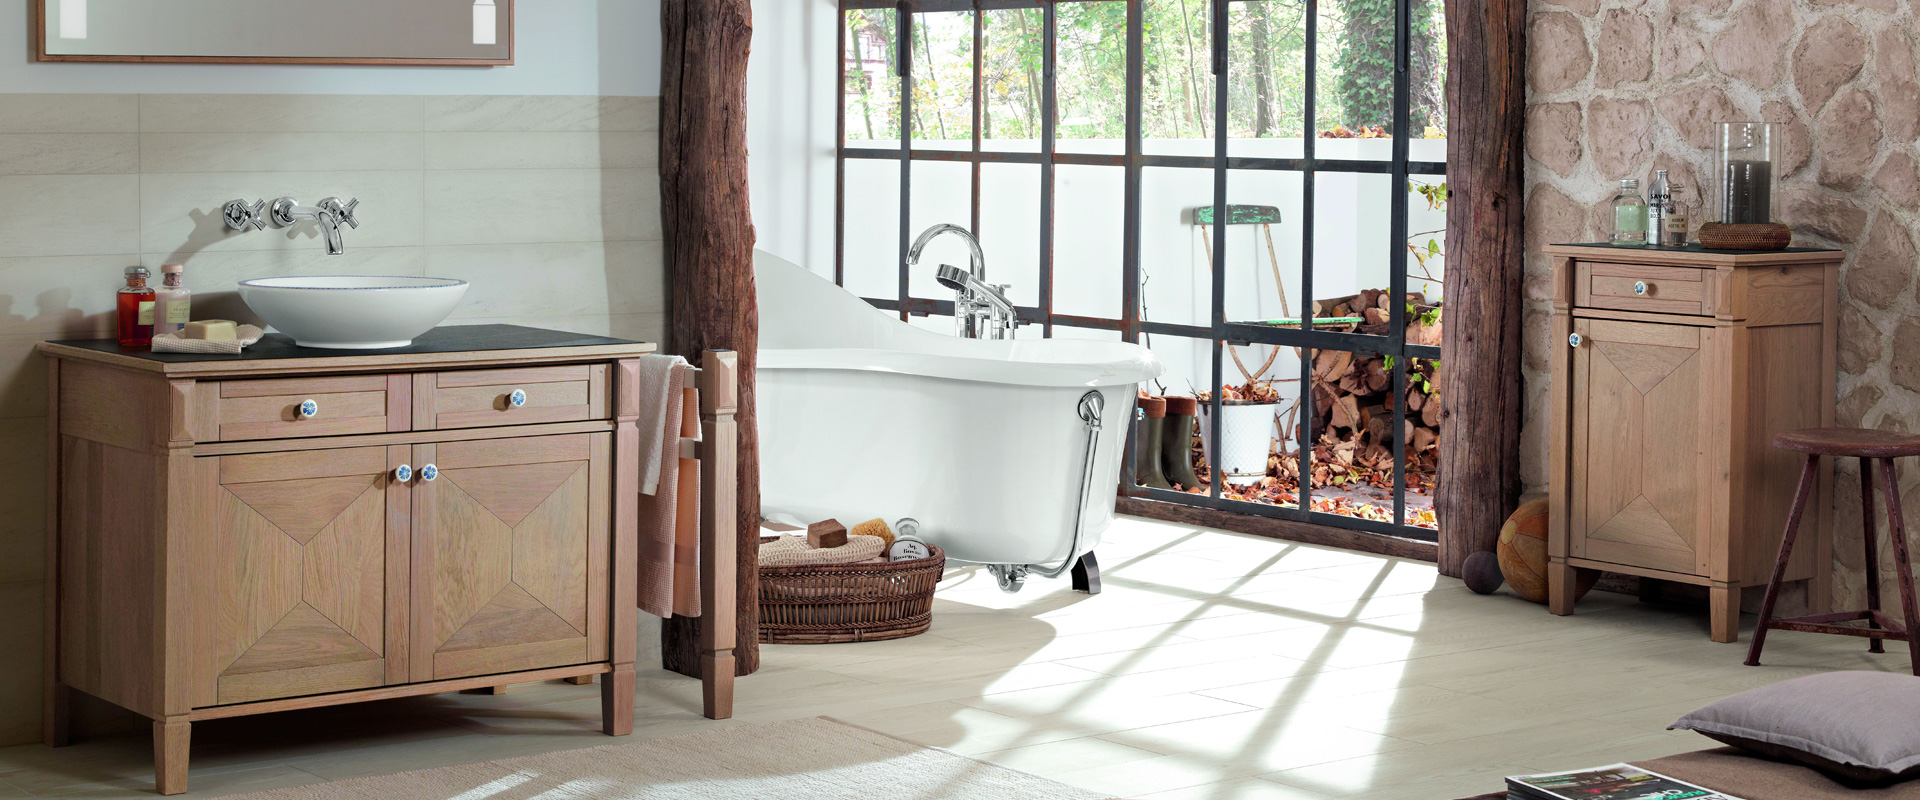 Wooden bath furniture - Care recommendations - Villeroy & Boch